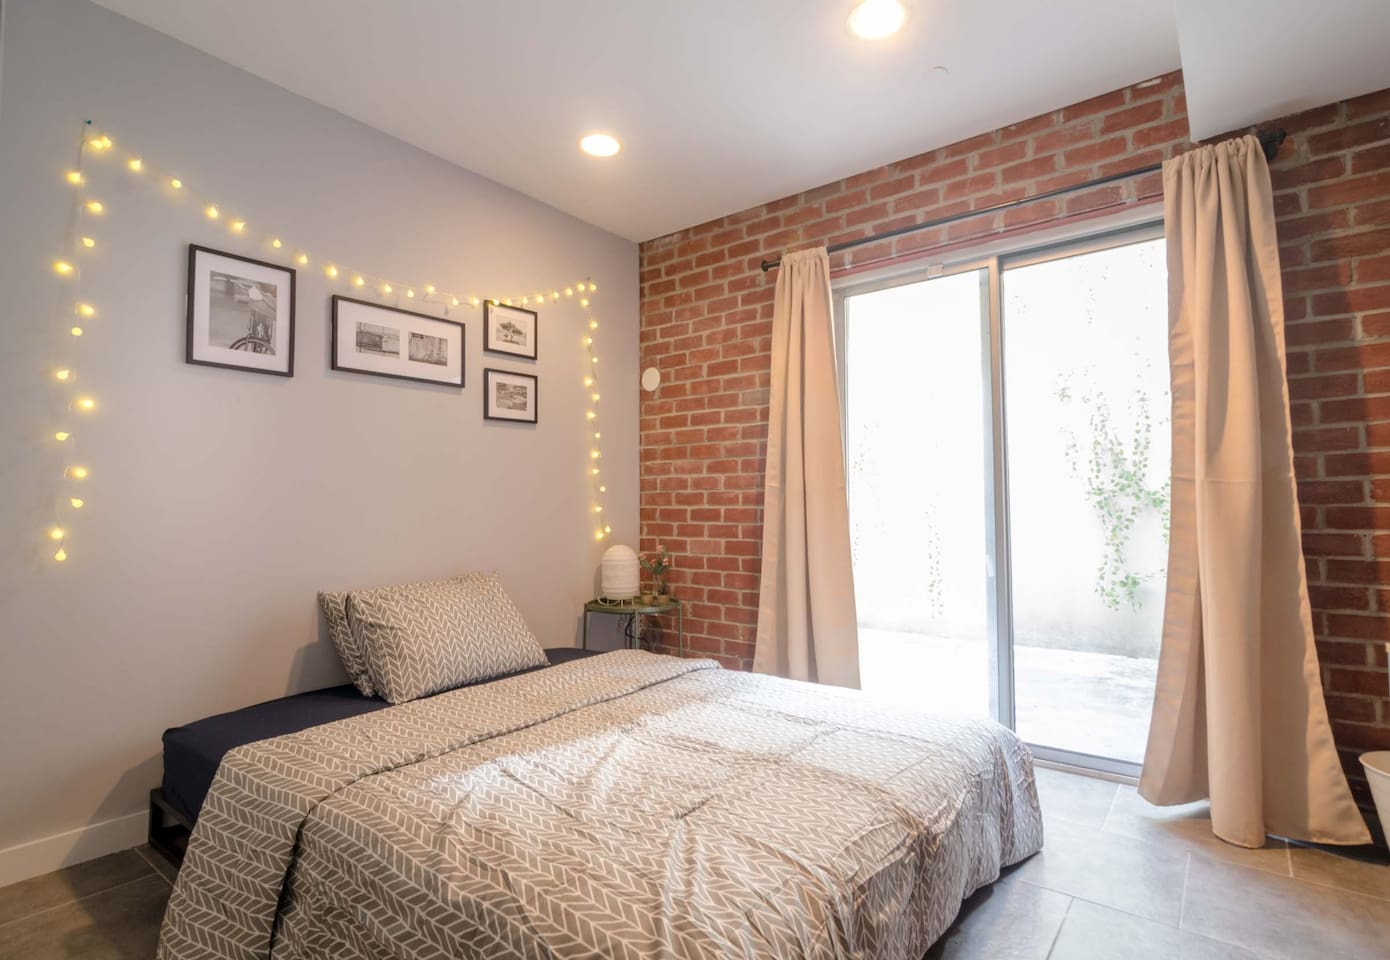 Charming room with exposed brick and outdoor space!